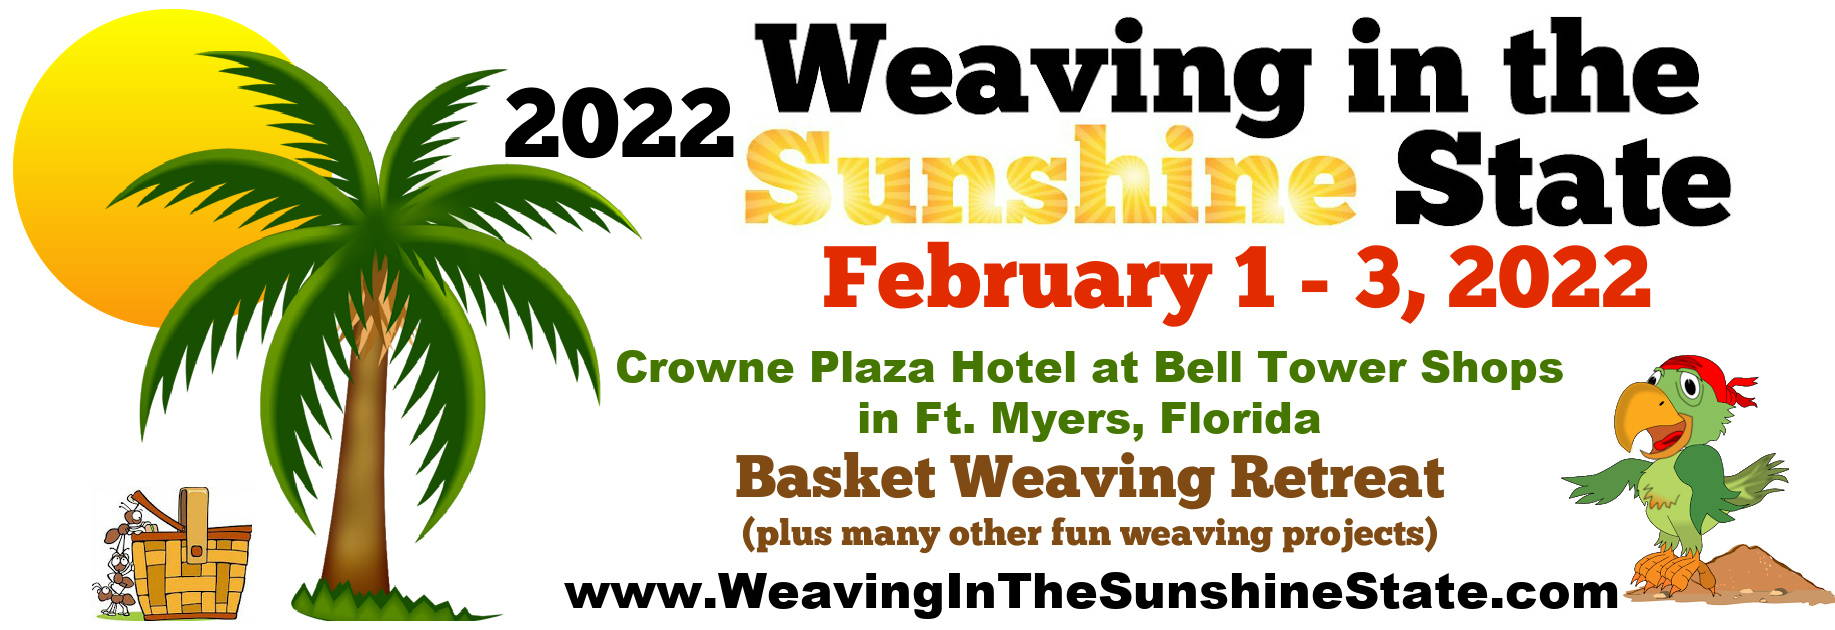 2022 Weaving in the Sunshine State